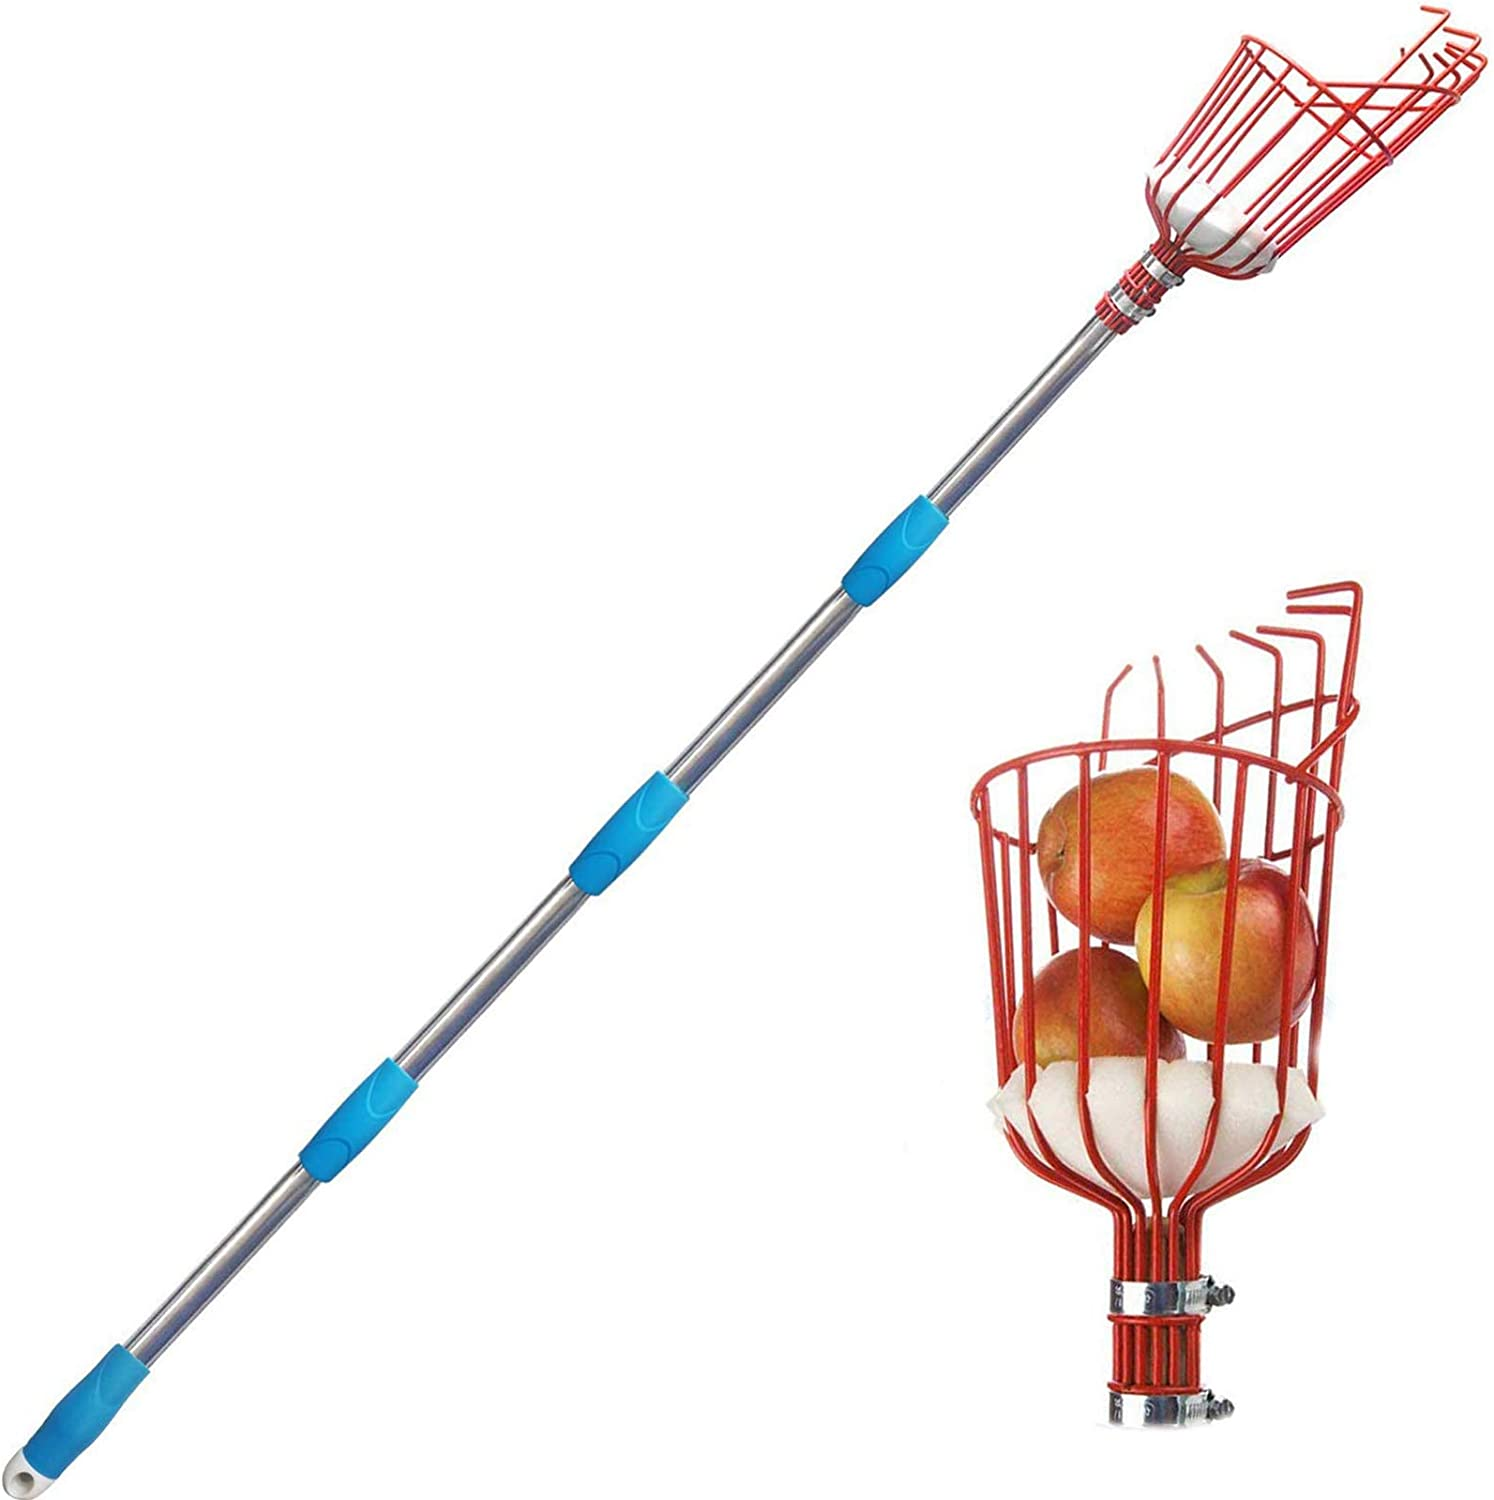 8 FT Height Adjustable Fruit Picker with Big Basket 8 ft Apple Orange Pear Picker with Light-Weight Stainless Steel Pole and Extra Fruit Carrying Bag for Getting Fruits MIYA Fruit Picker Tool